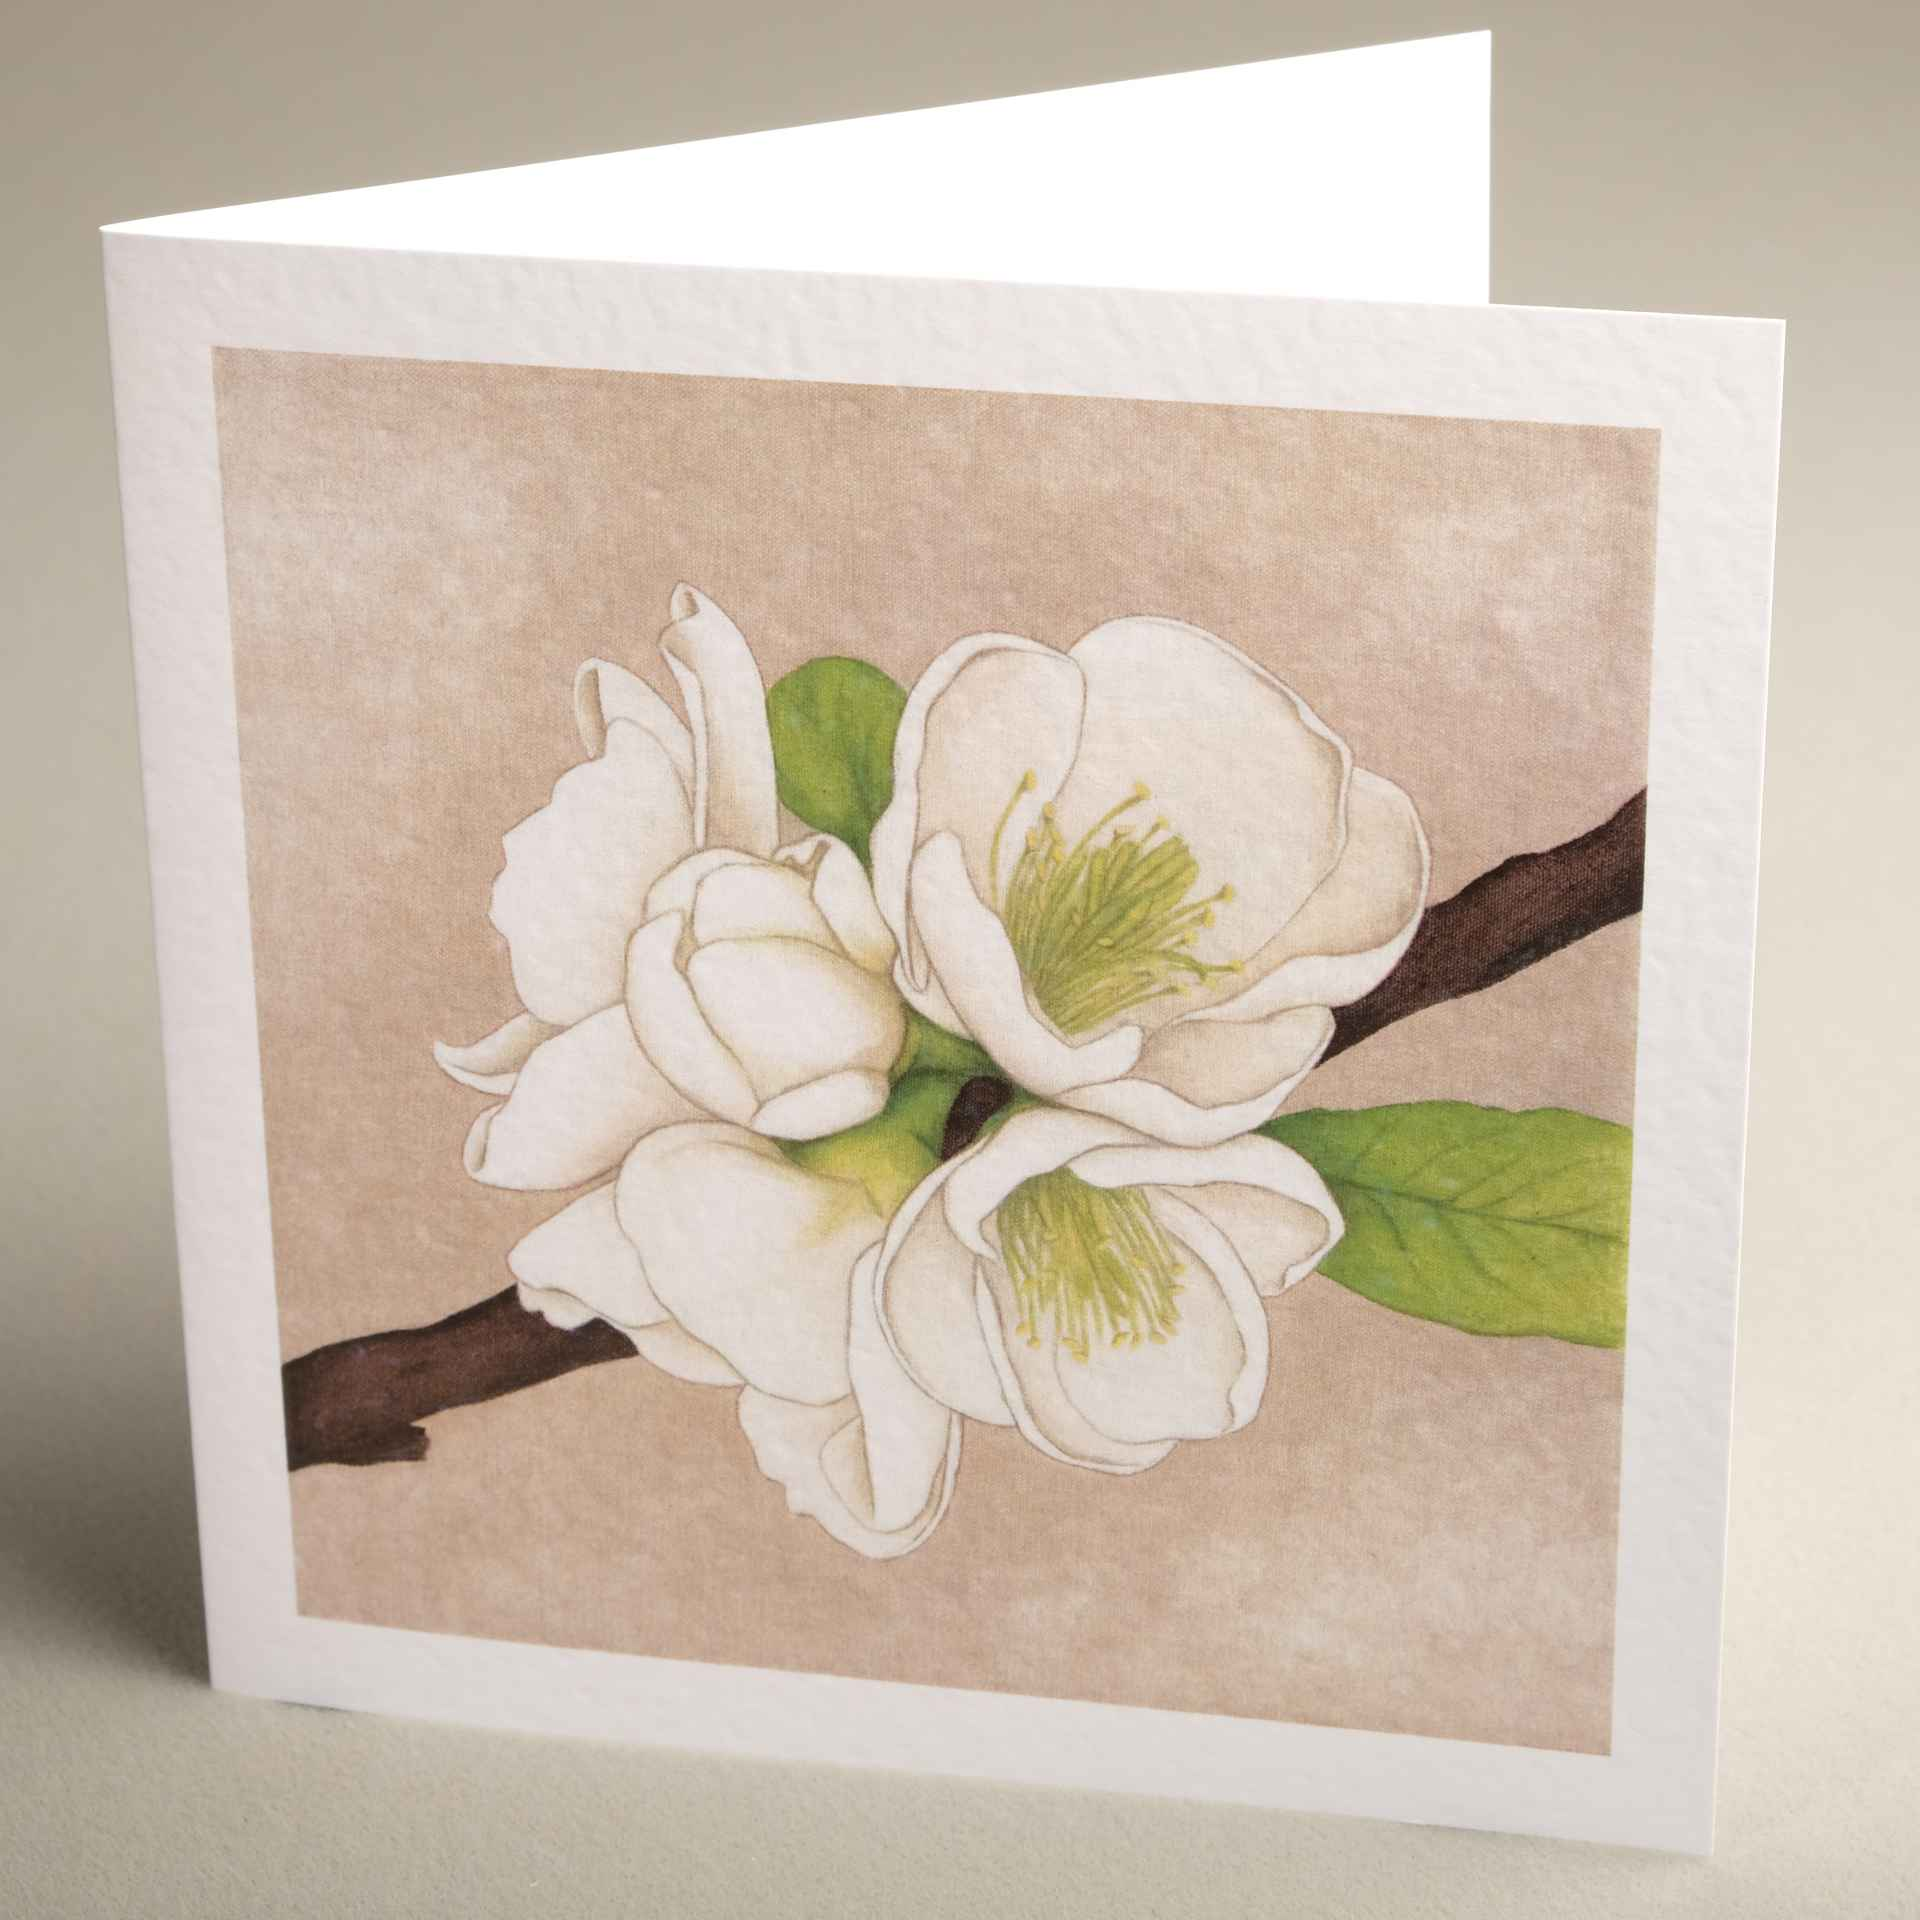 Floral greetings cards from jaci hogan art flower design greetings greetings cards apple blossom textured 150x150 m4hsunfo